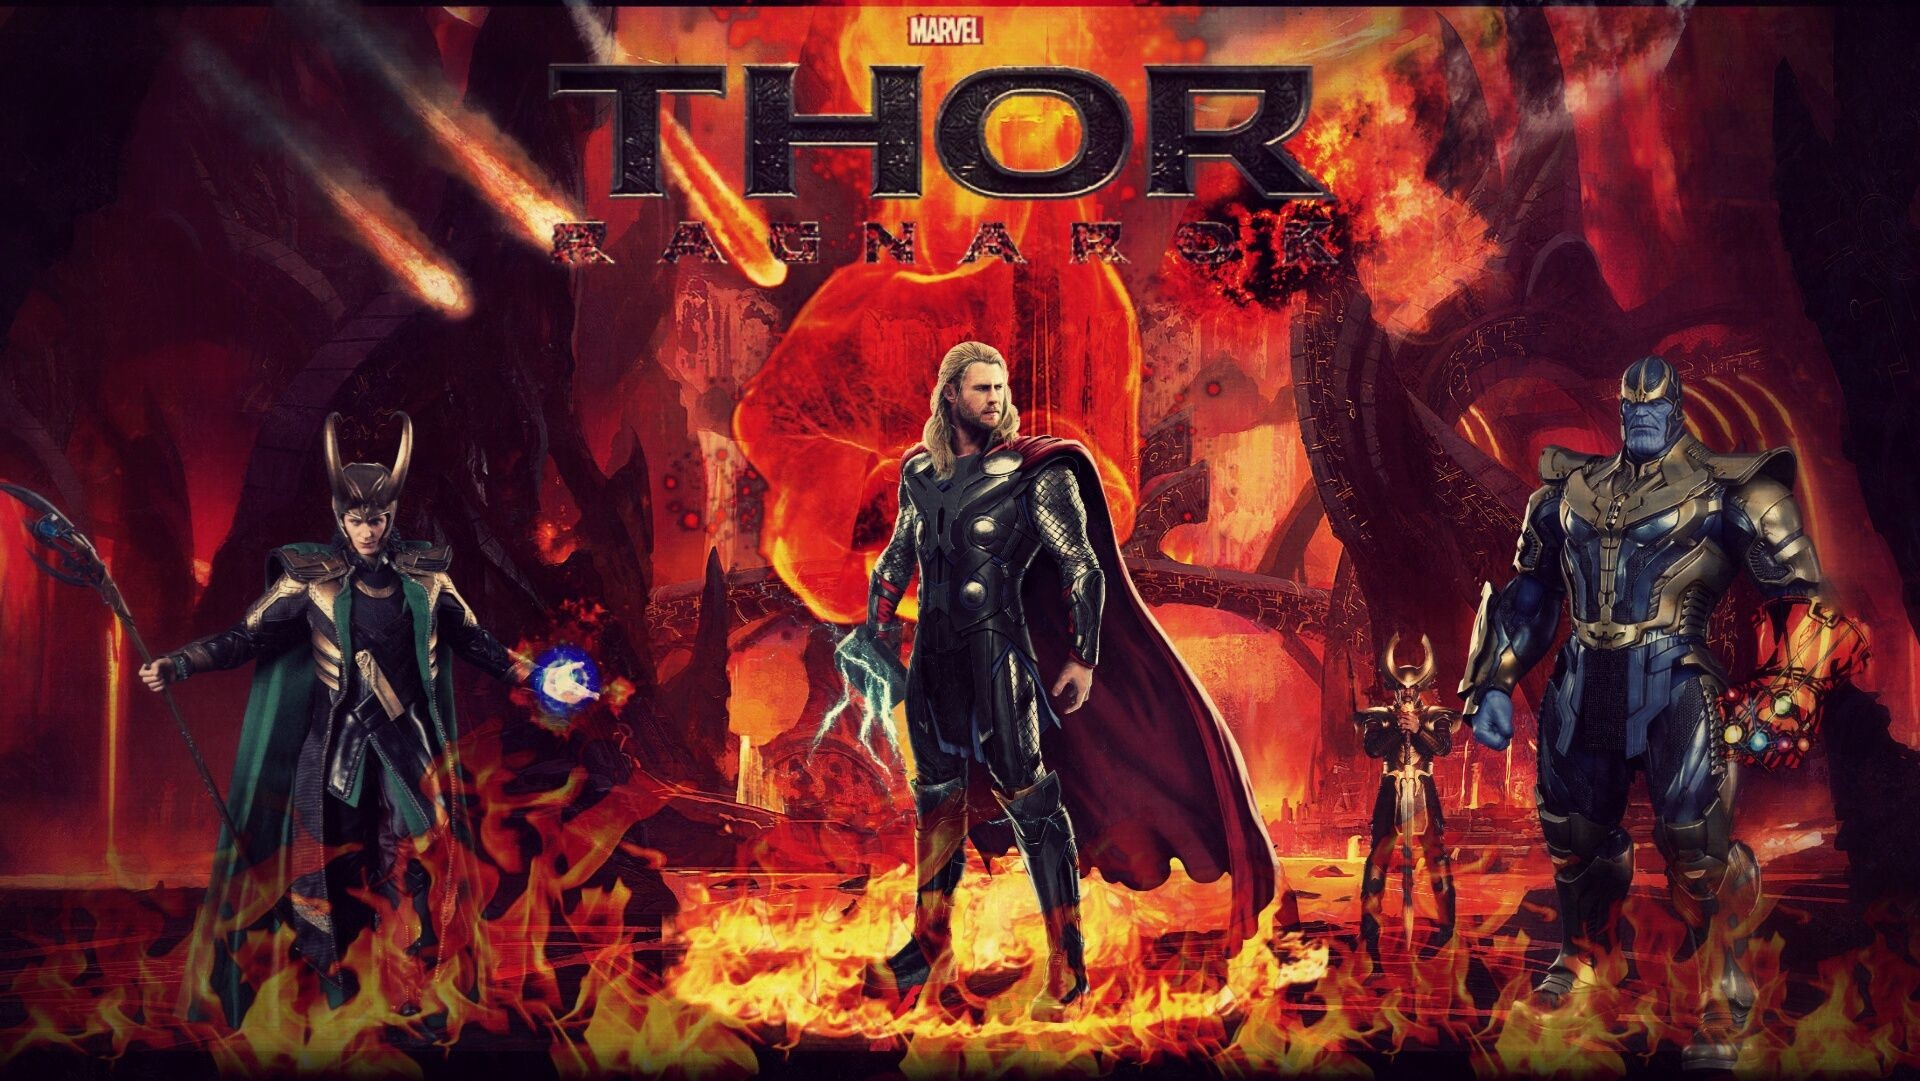 Res: 1920x1081, Thor Ragnarok HD Images 8 whb #ThorRagnarokHDImages #ThorRagnarok #movies # wallpapers #hdwallpapers